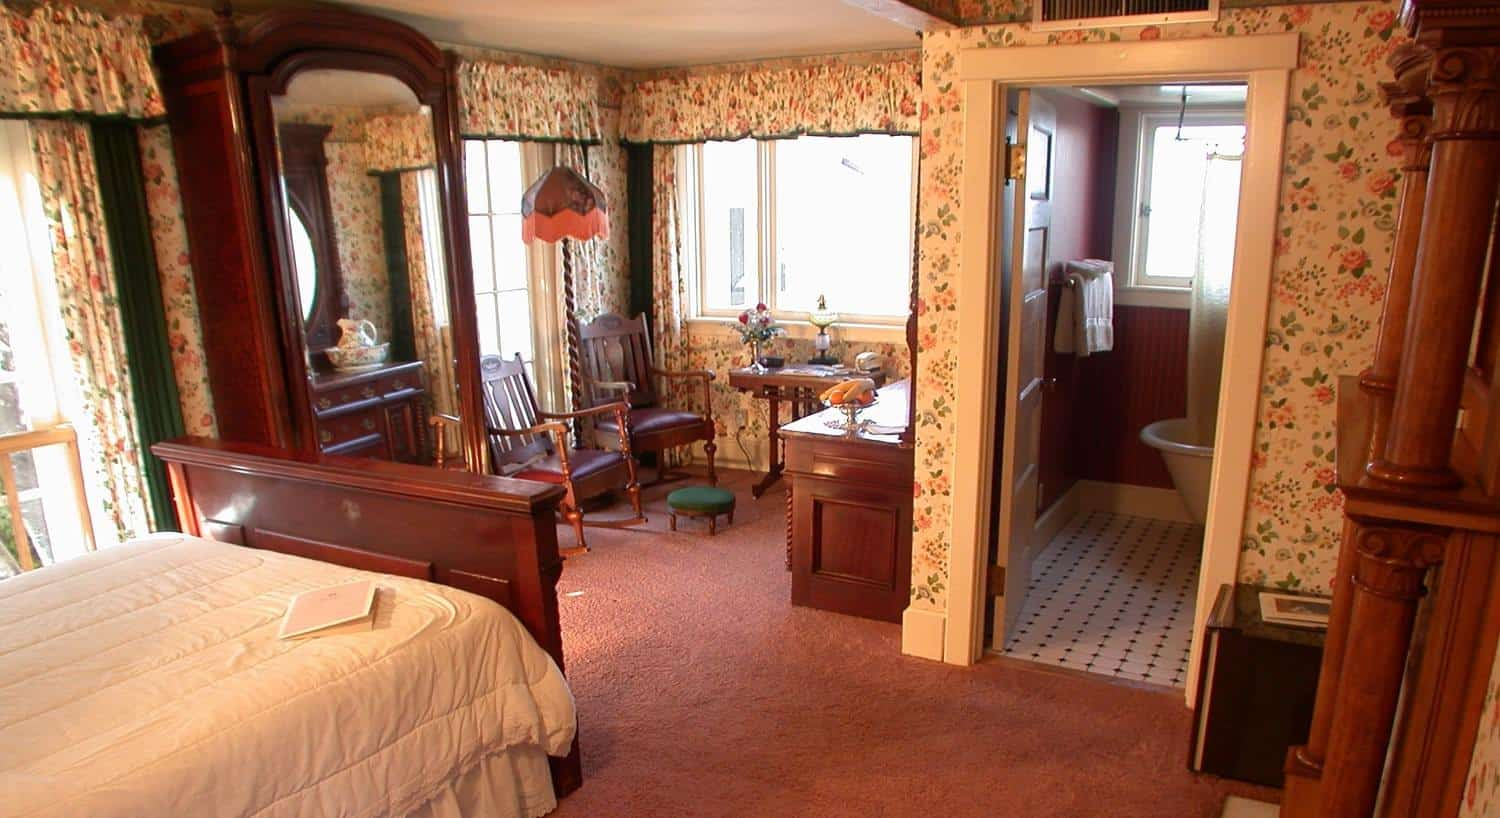 Guest room with several windows, floral walls, wood bed, white bedding, attached bath